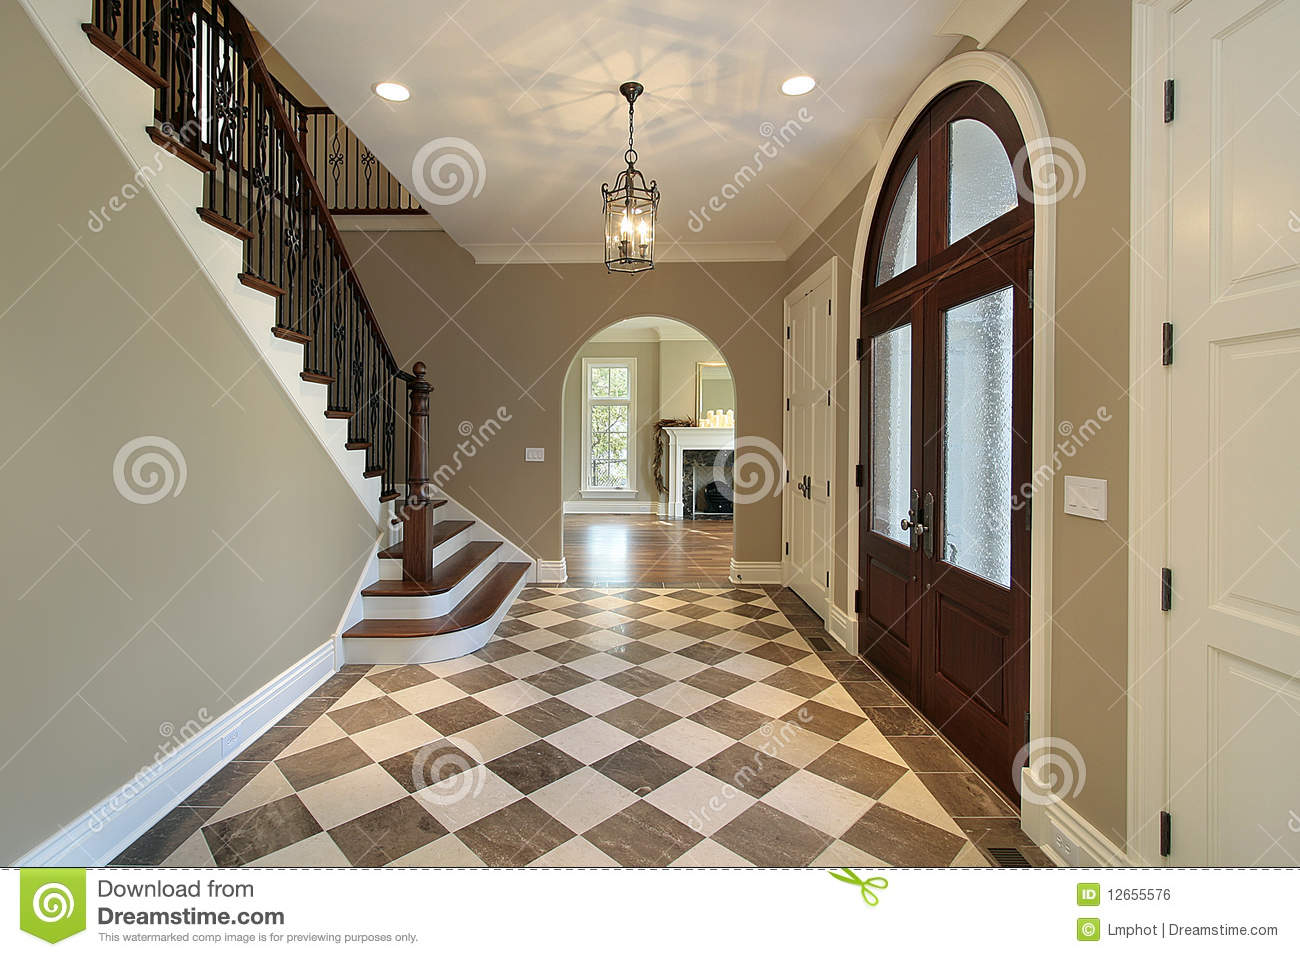 Foyer Clipart : Foyer with checkerboard floor royalty free stock image